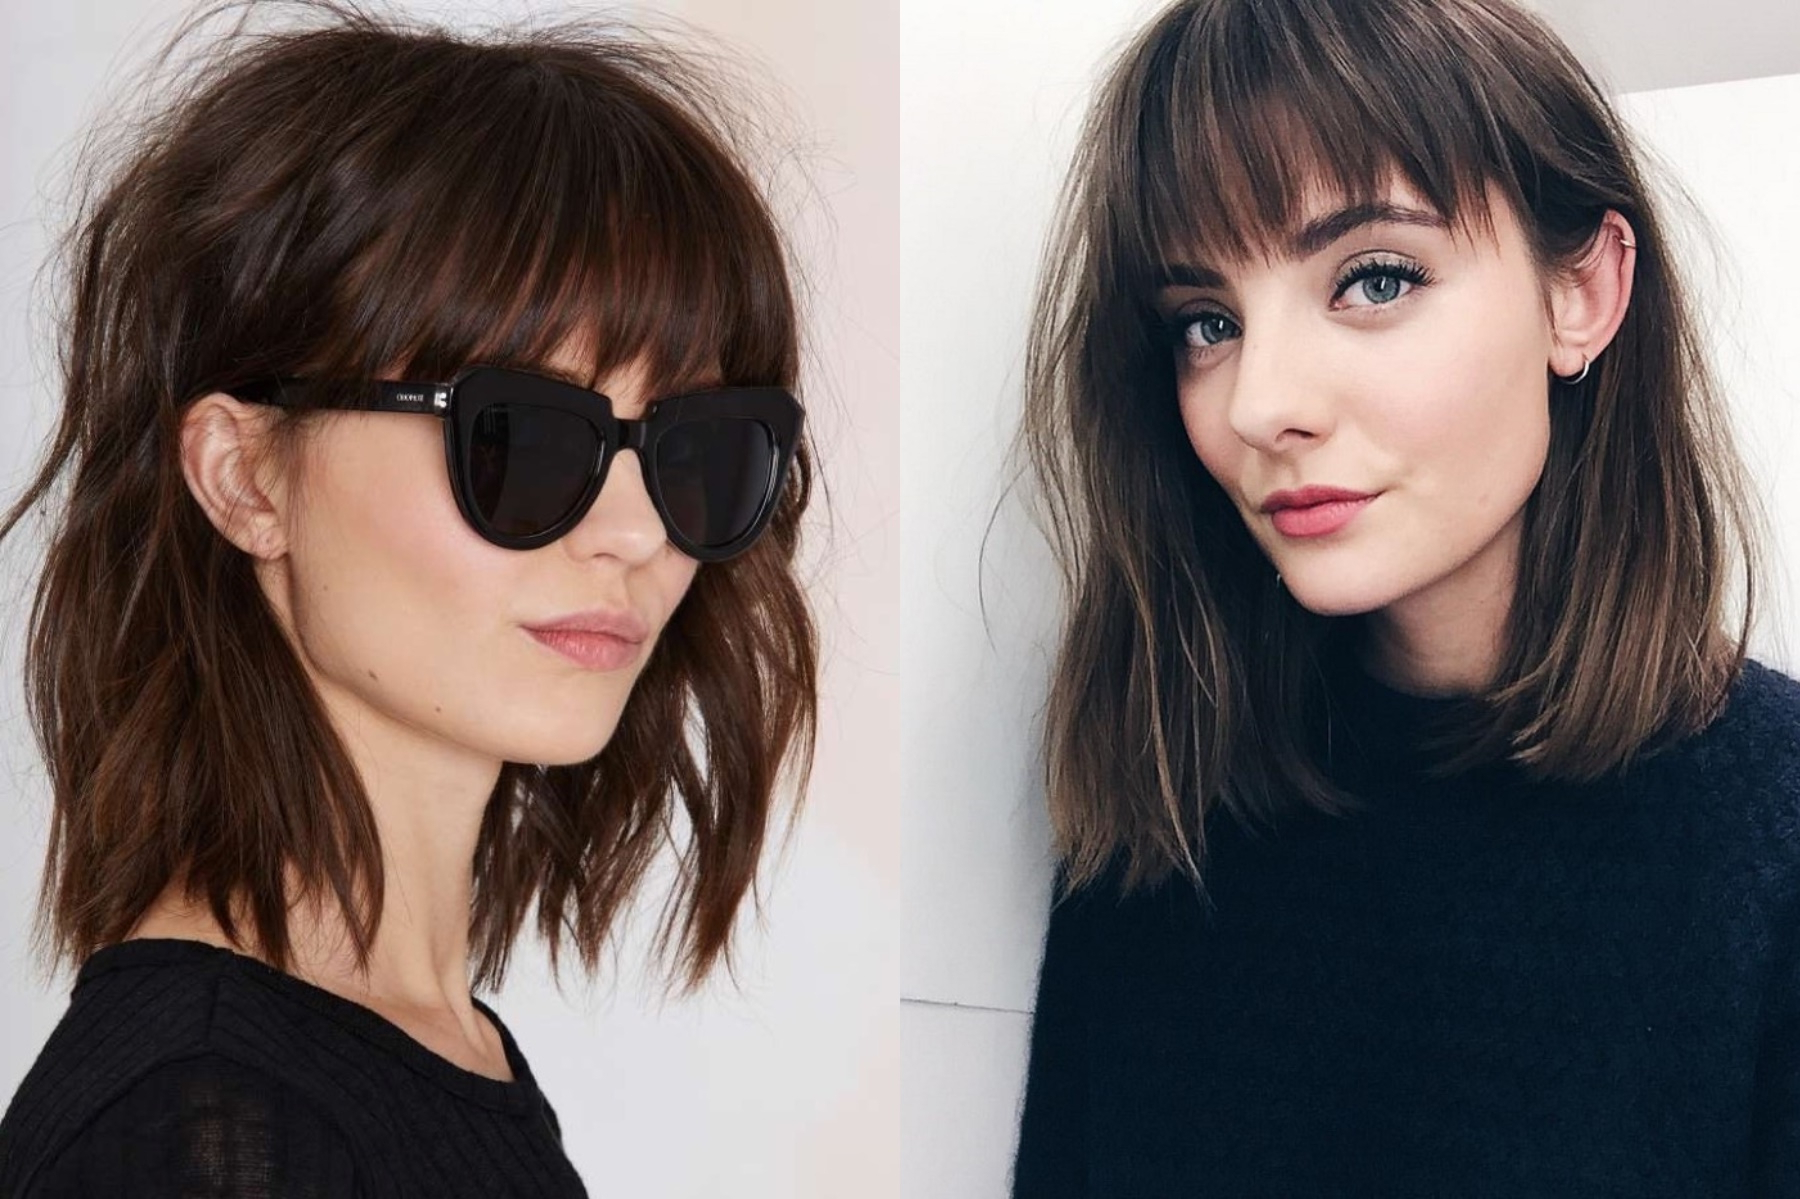 Latest Ragged Bangs 2018 For Women's Hairstyles Pertaining To Trendy Ragged Bob Asian Hairstyles (View 14 of 20)